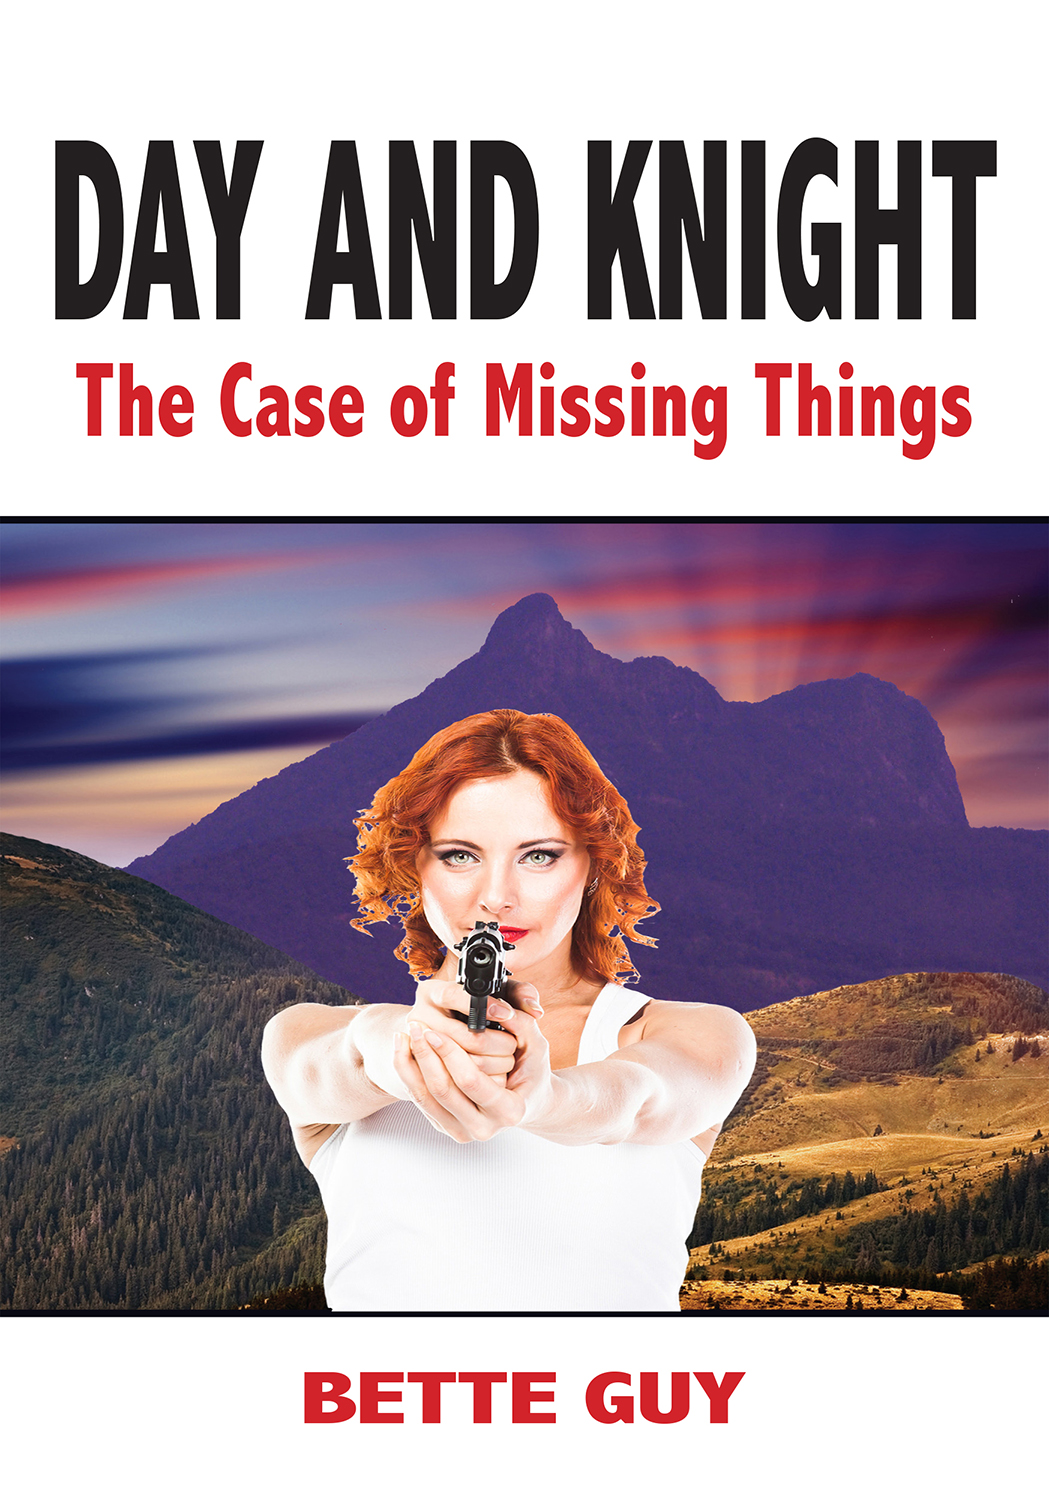 Day and Knight-The Case of Missing Things